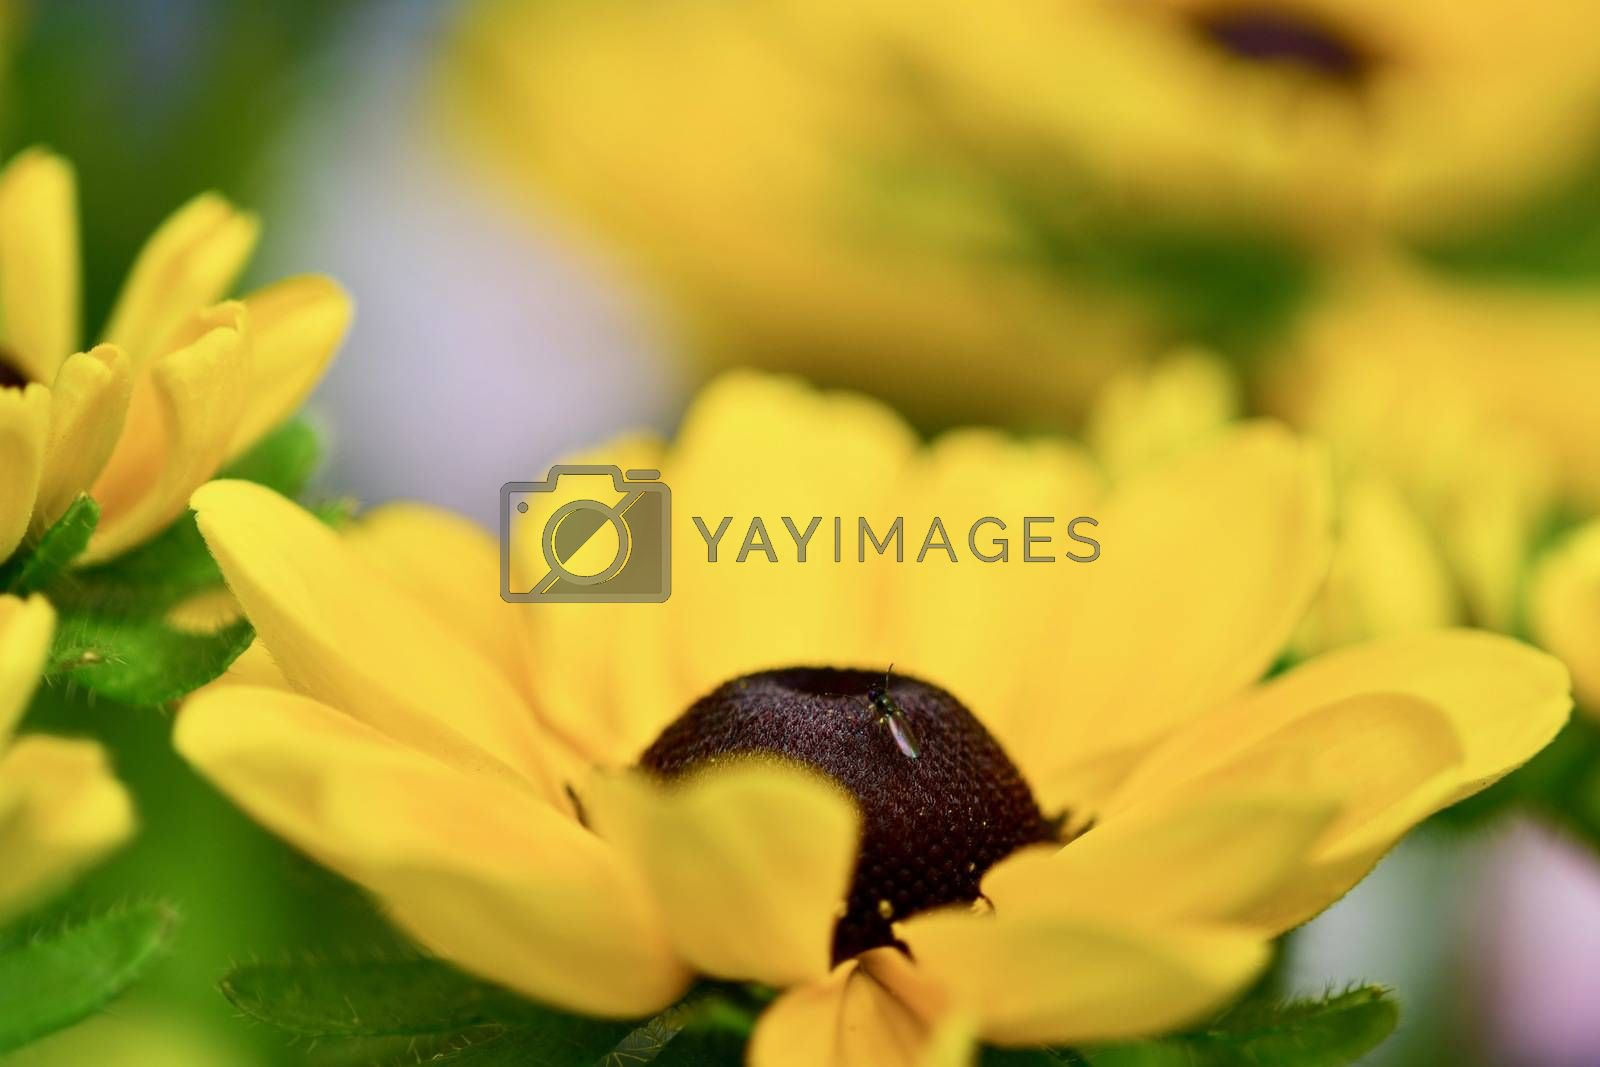 Black-eyed Susan is a tried-and-true favorite of the perennial garden, well-loved for its deep, butterscotch-yellow ray flowers